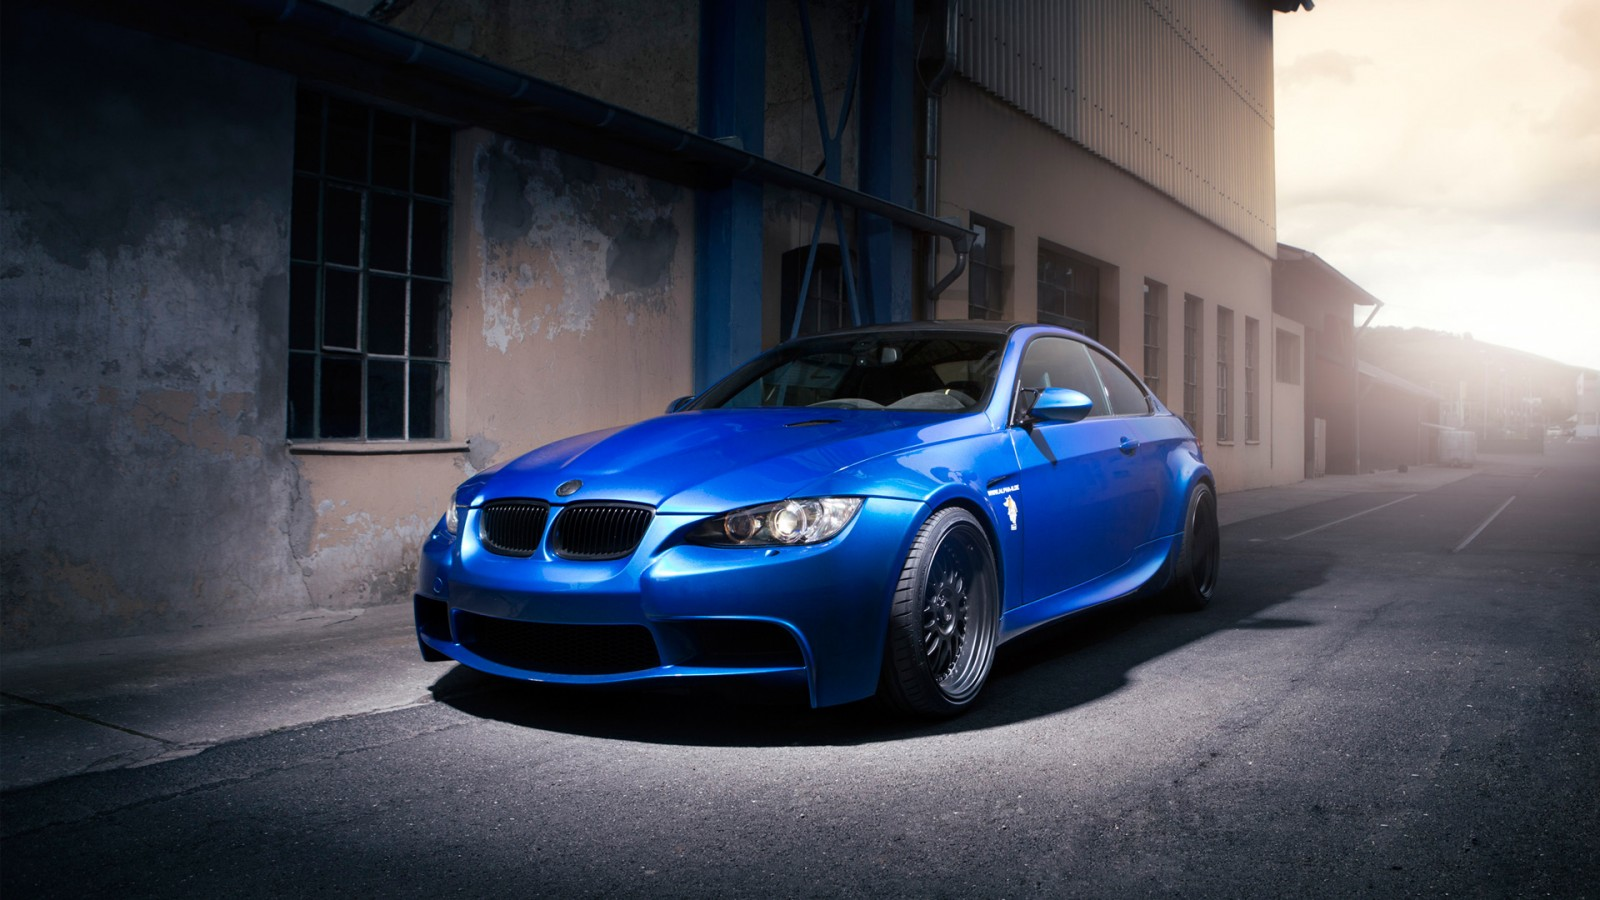 BMW M3 BT92 by Alpha N Performance 2013 Wallpaper | HD Car ...